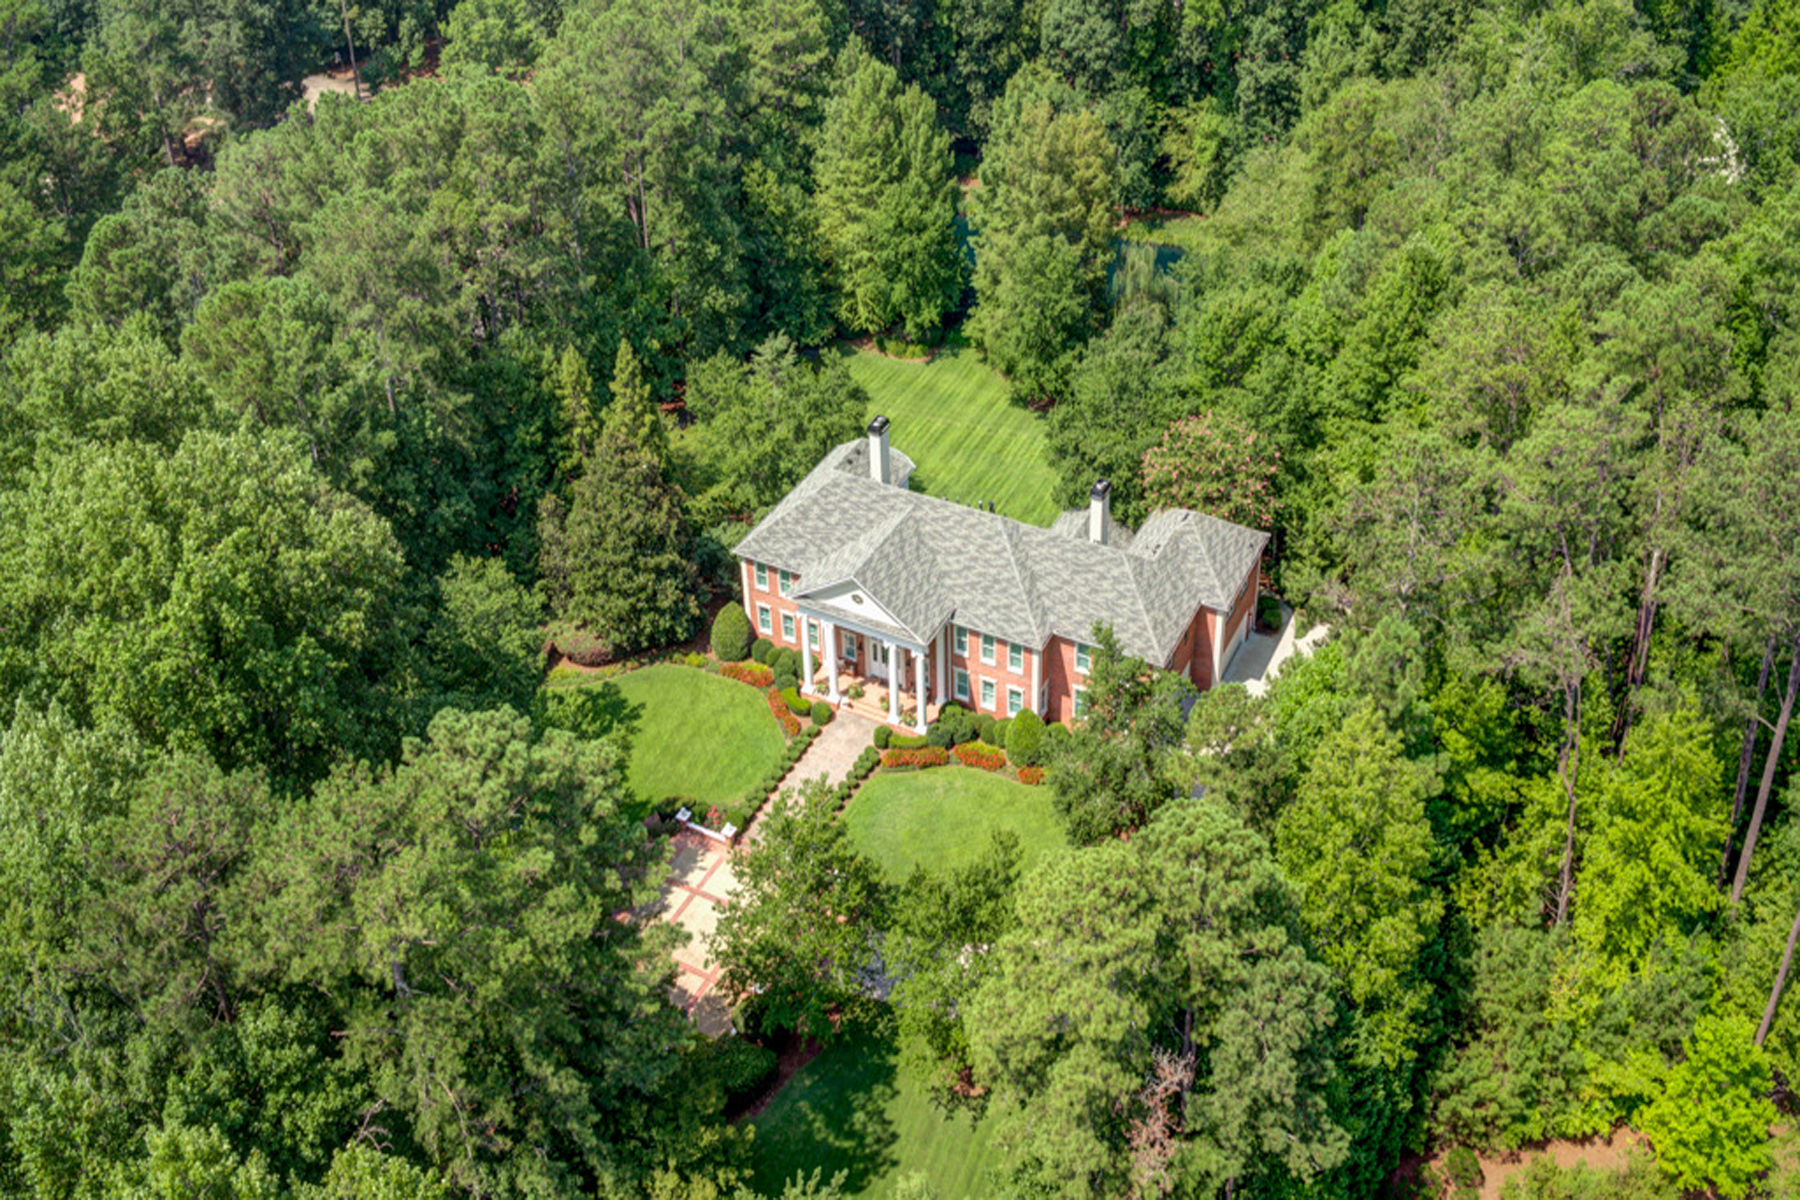 獨棟家庭住宅 為 出售 在 Meticulous Custom Built Home On Five Acres 4500 Candacraig Alpharetta, 喬治亞州 30022 美國